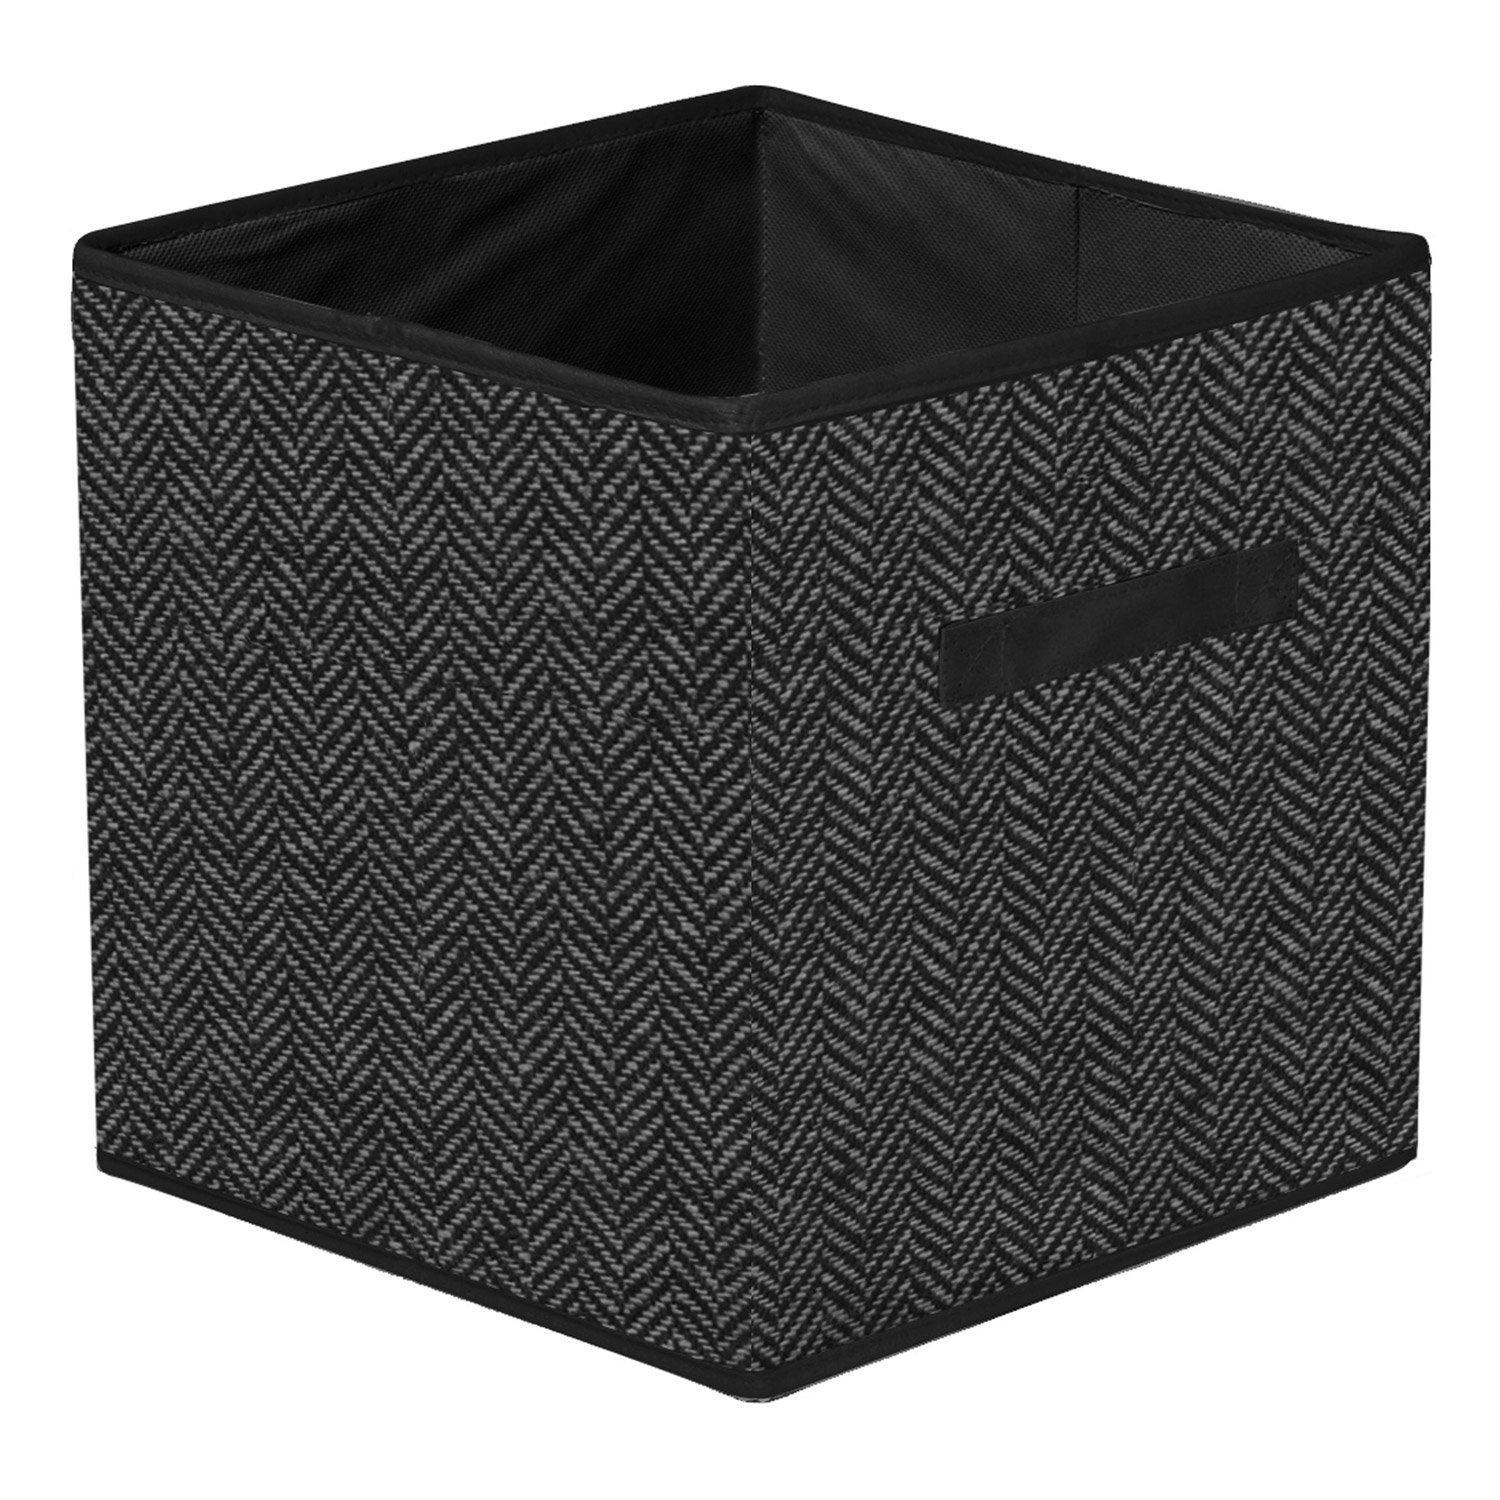 panier de rangement coton multikaz gris l32xh32xp32 cm leroy merlin. Black Bedroom Furniture Sets. Home Design Ideas